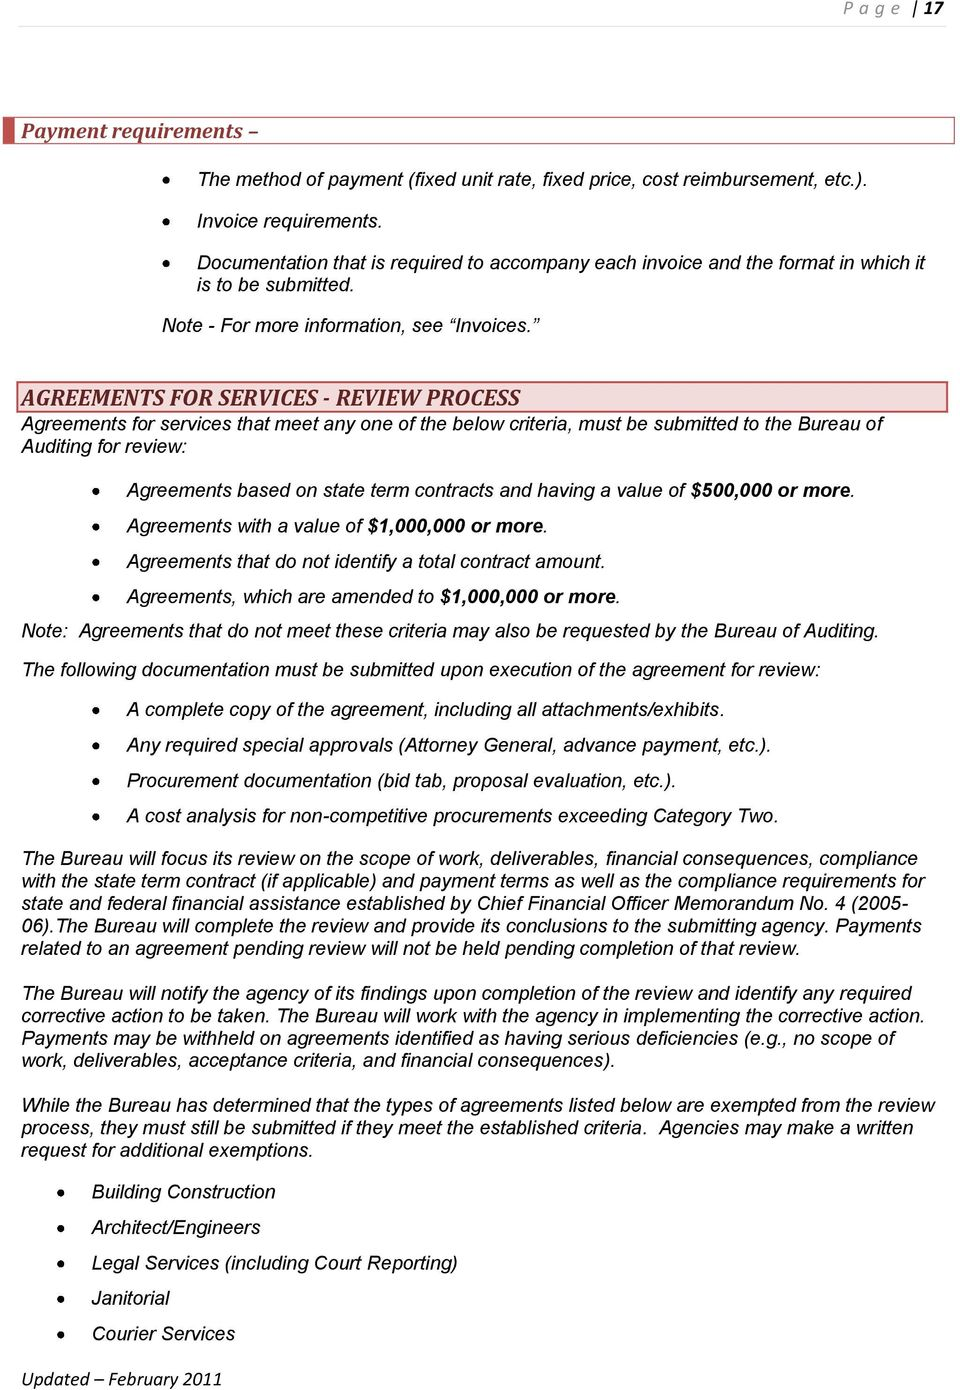 AGREEMENTS FOR SERVICES - REVIEW PROCESS Agreements for services that meet any one of the below criteria, must be submitted to the Bureau of Auditing for review: Agreements based on state term